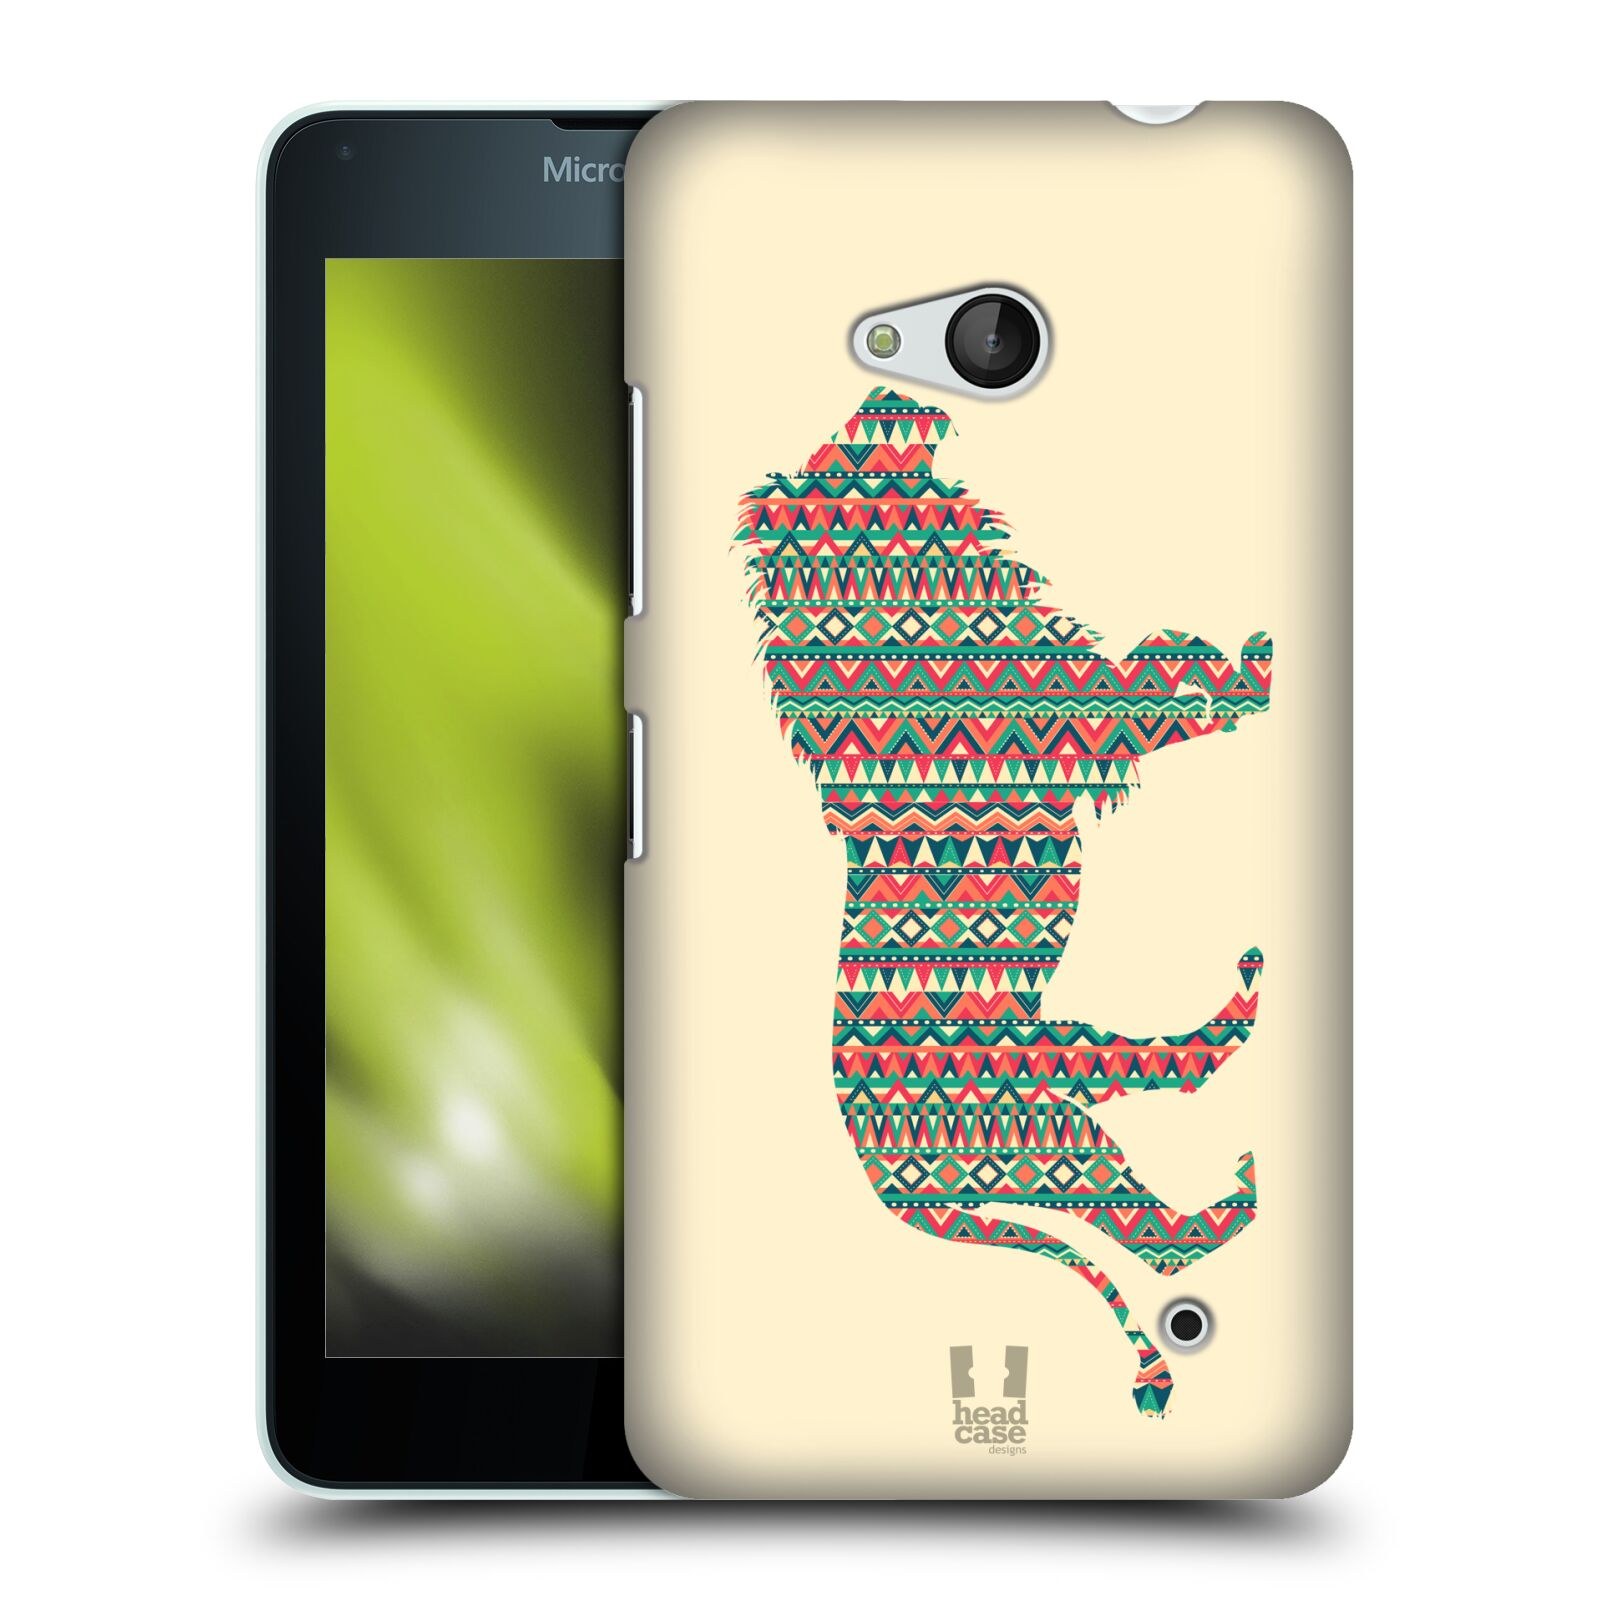 HEAD CASE DESIGNS PATTERNED ANIMAL SILHOUETTES CASE FOR MICROSOFT LUMIA 640